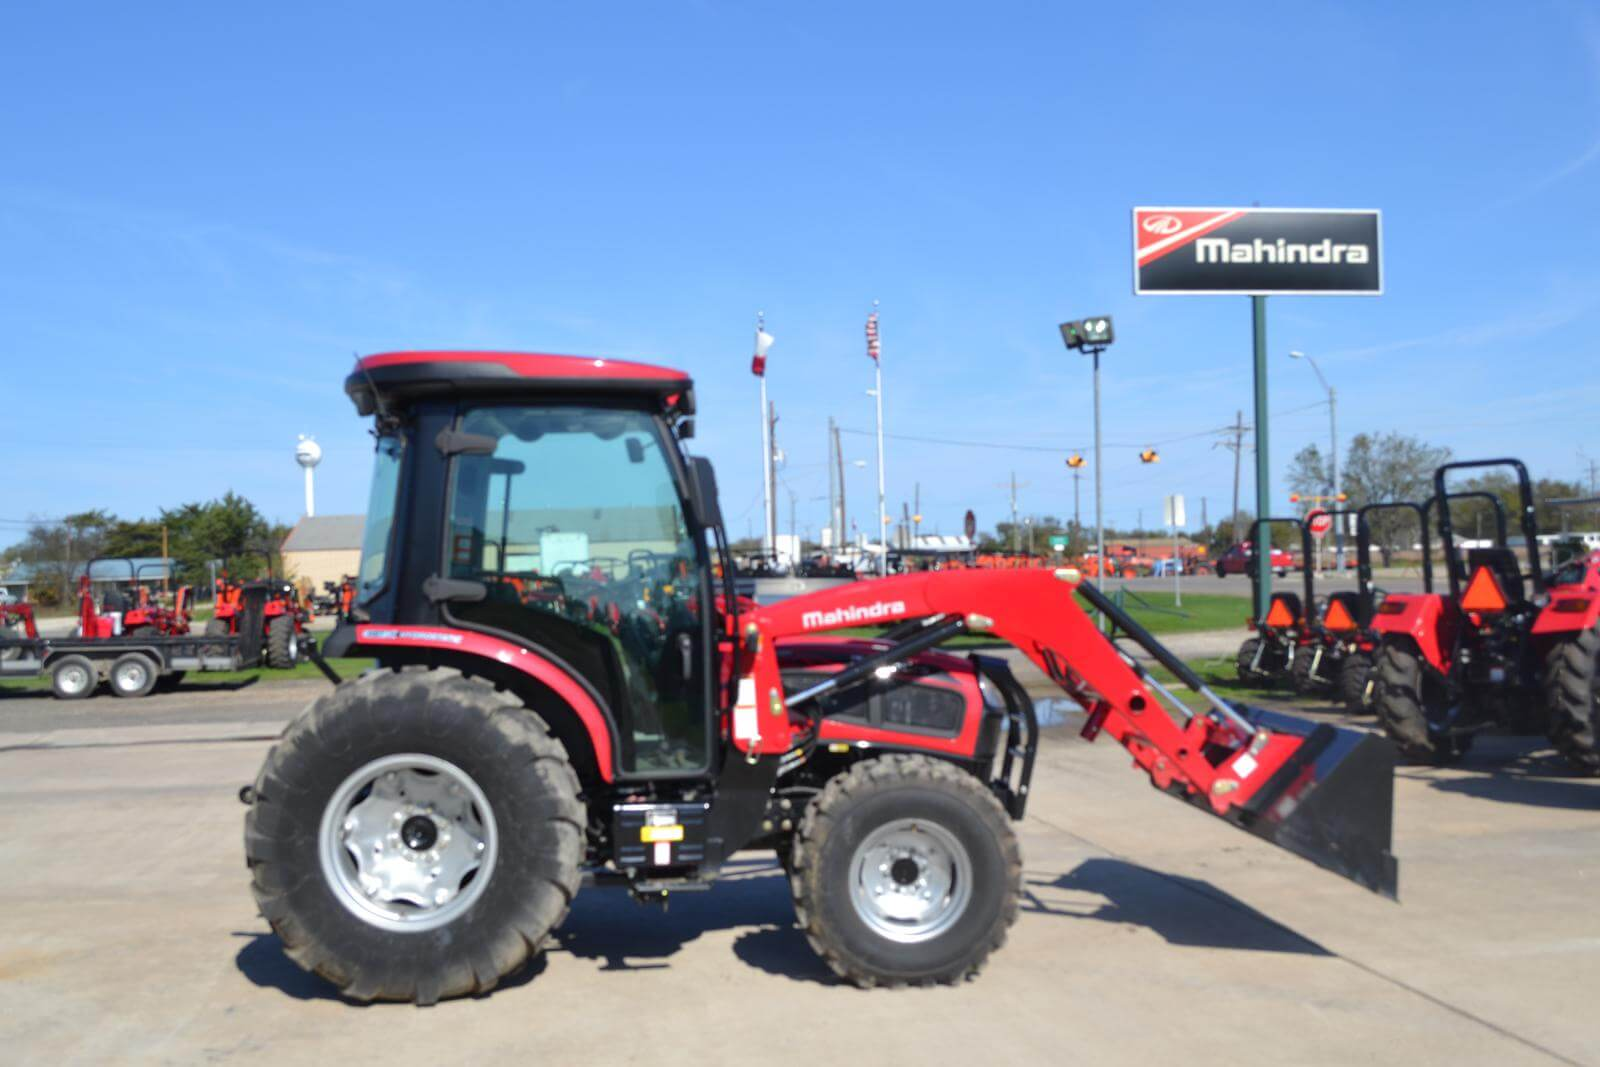 75 Feet To Meters Mahindra 3500 Series Compact Tractors Information Price Specs